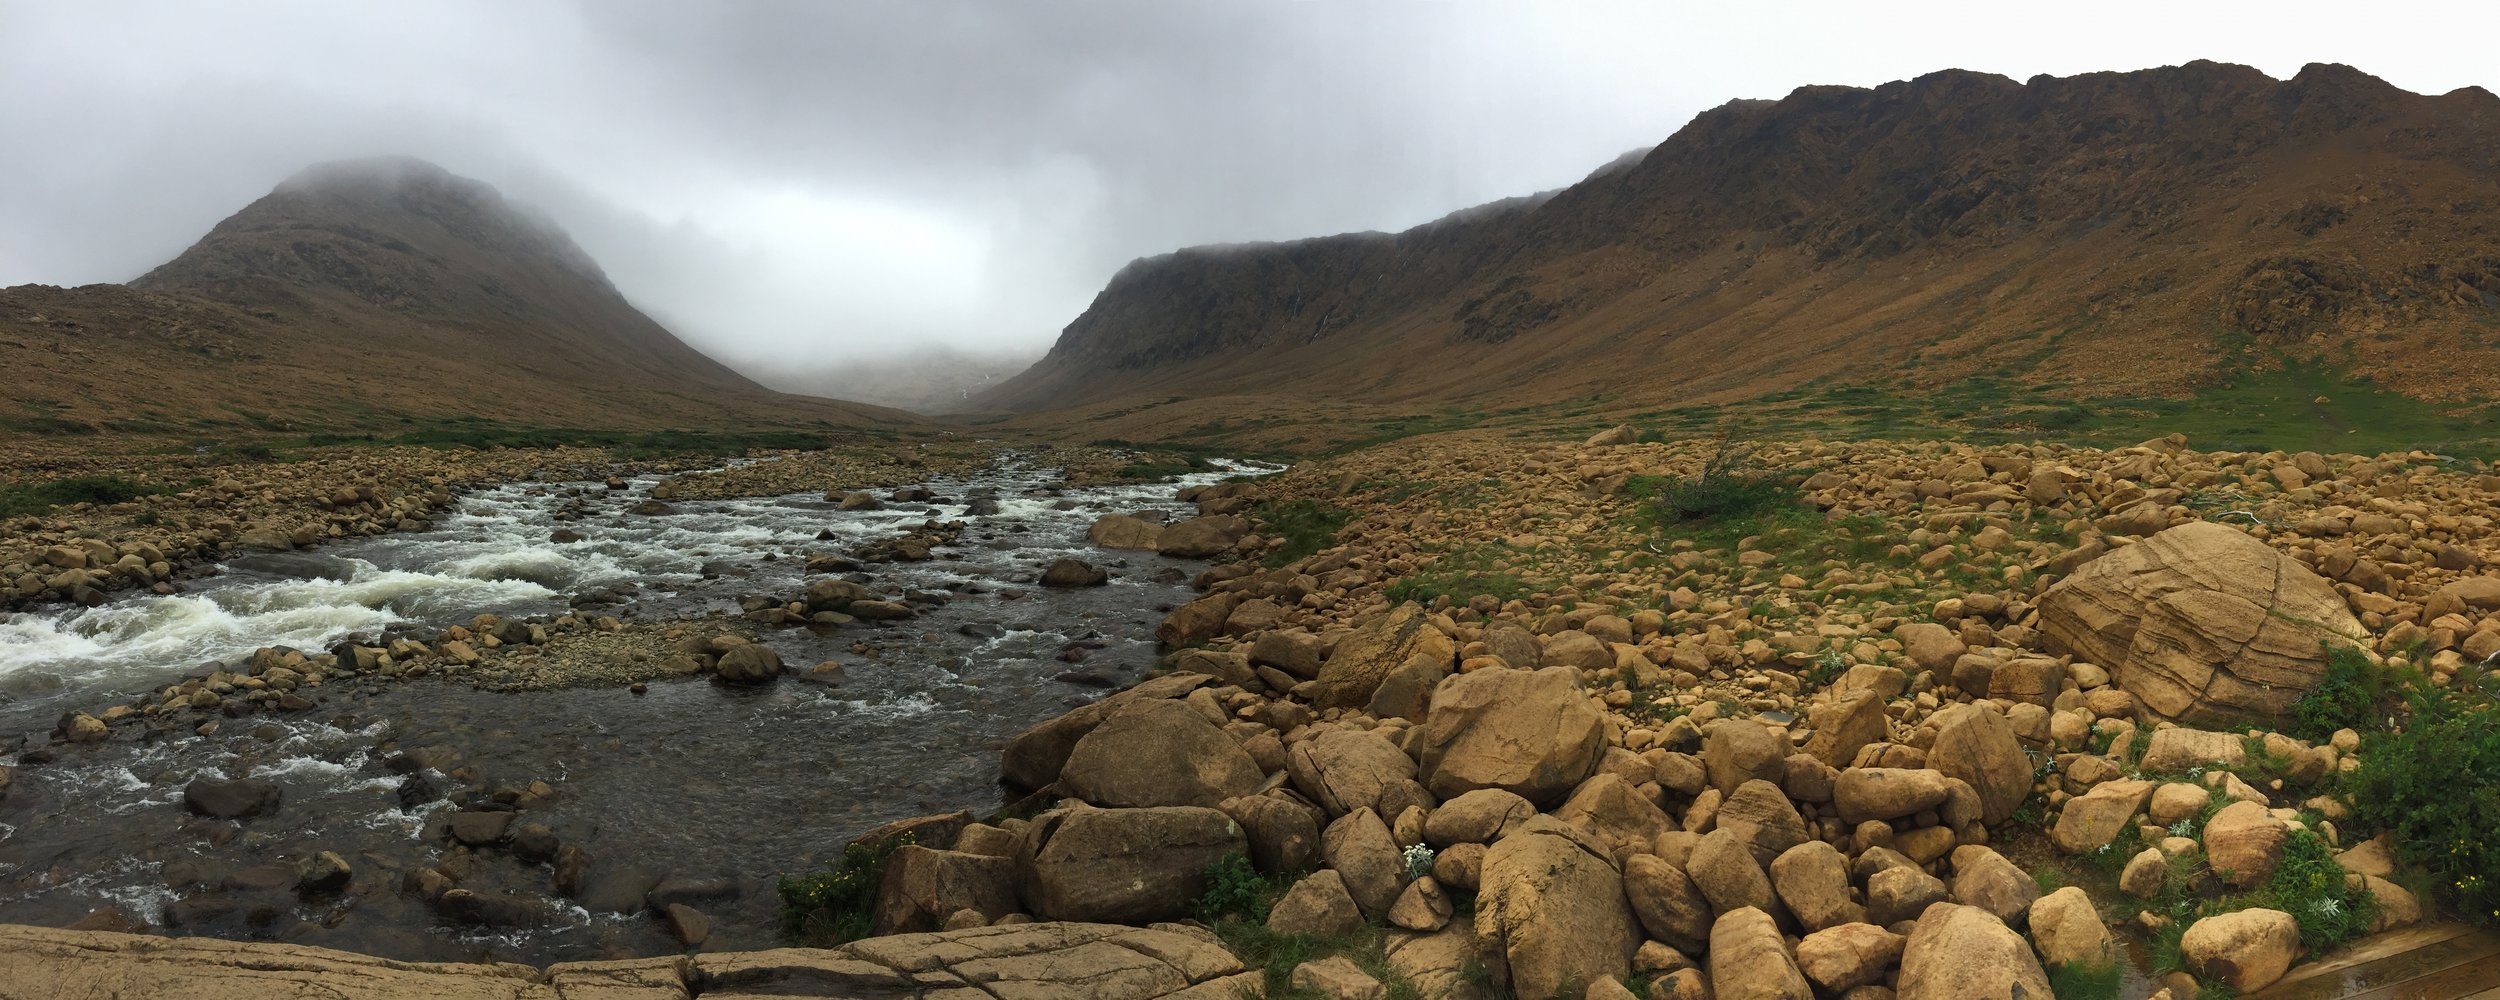 While C.D was busy moving Amanda was hiking in the Tablelands.